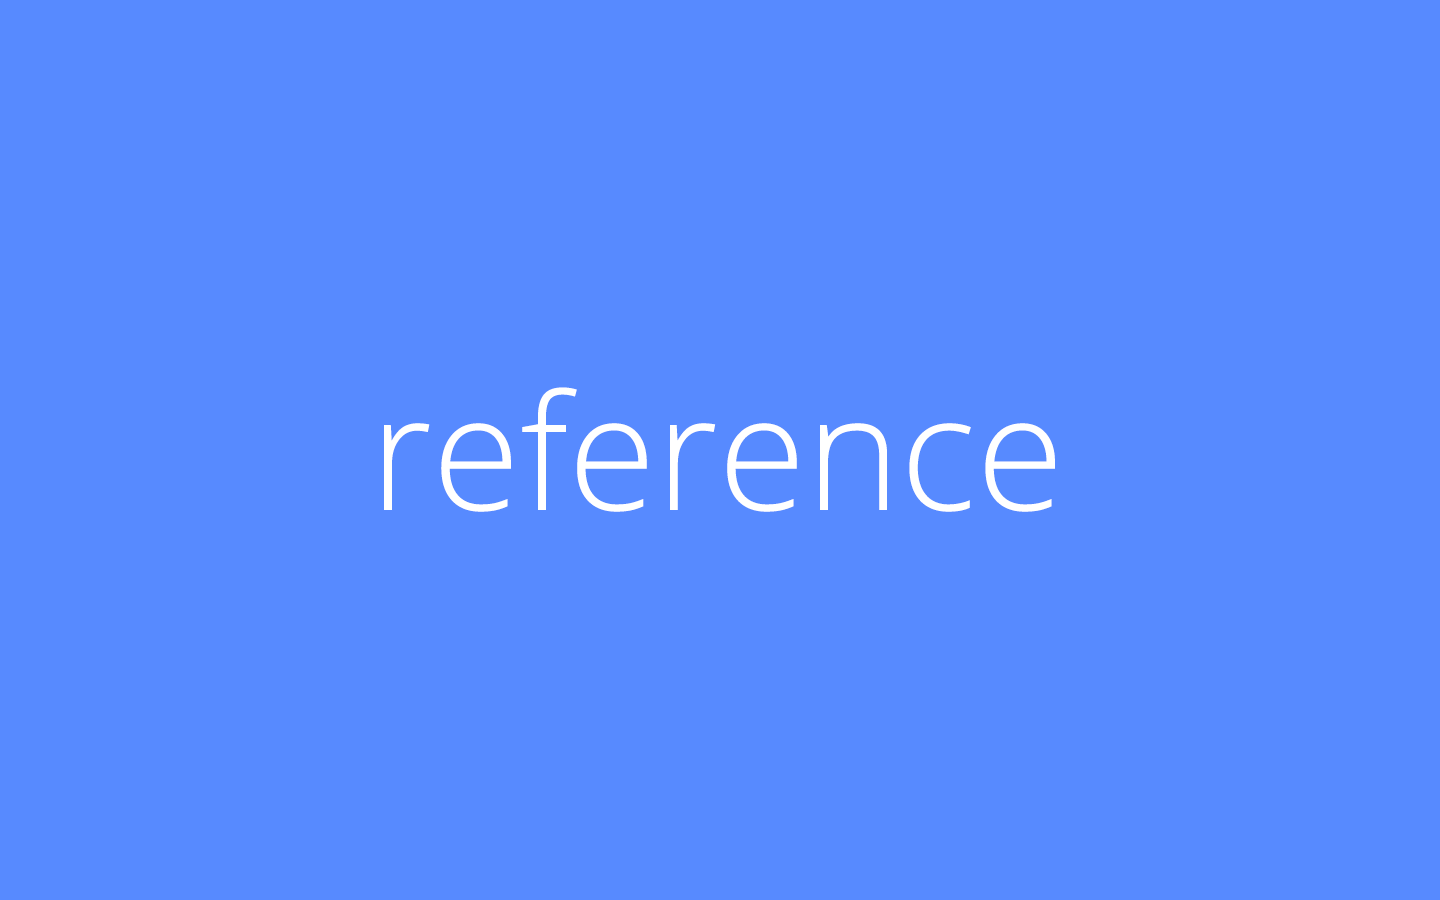 reference-placeholder